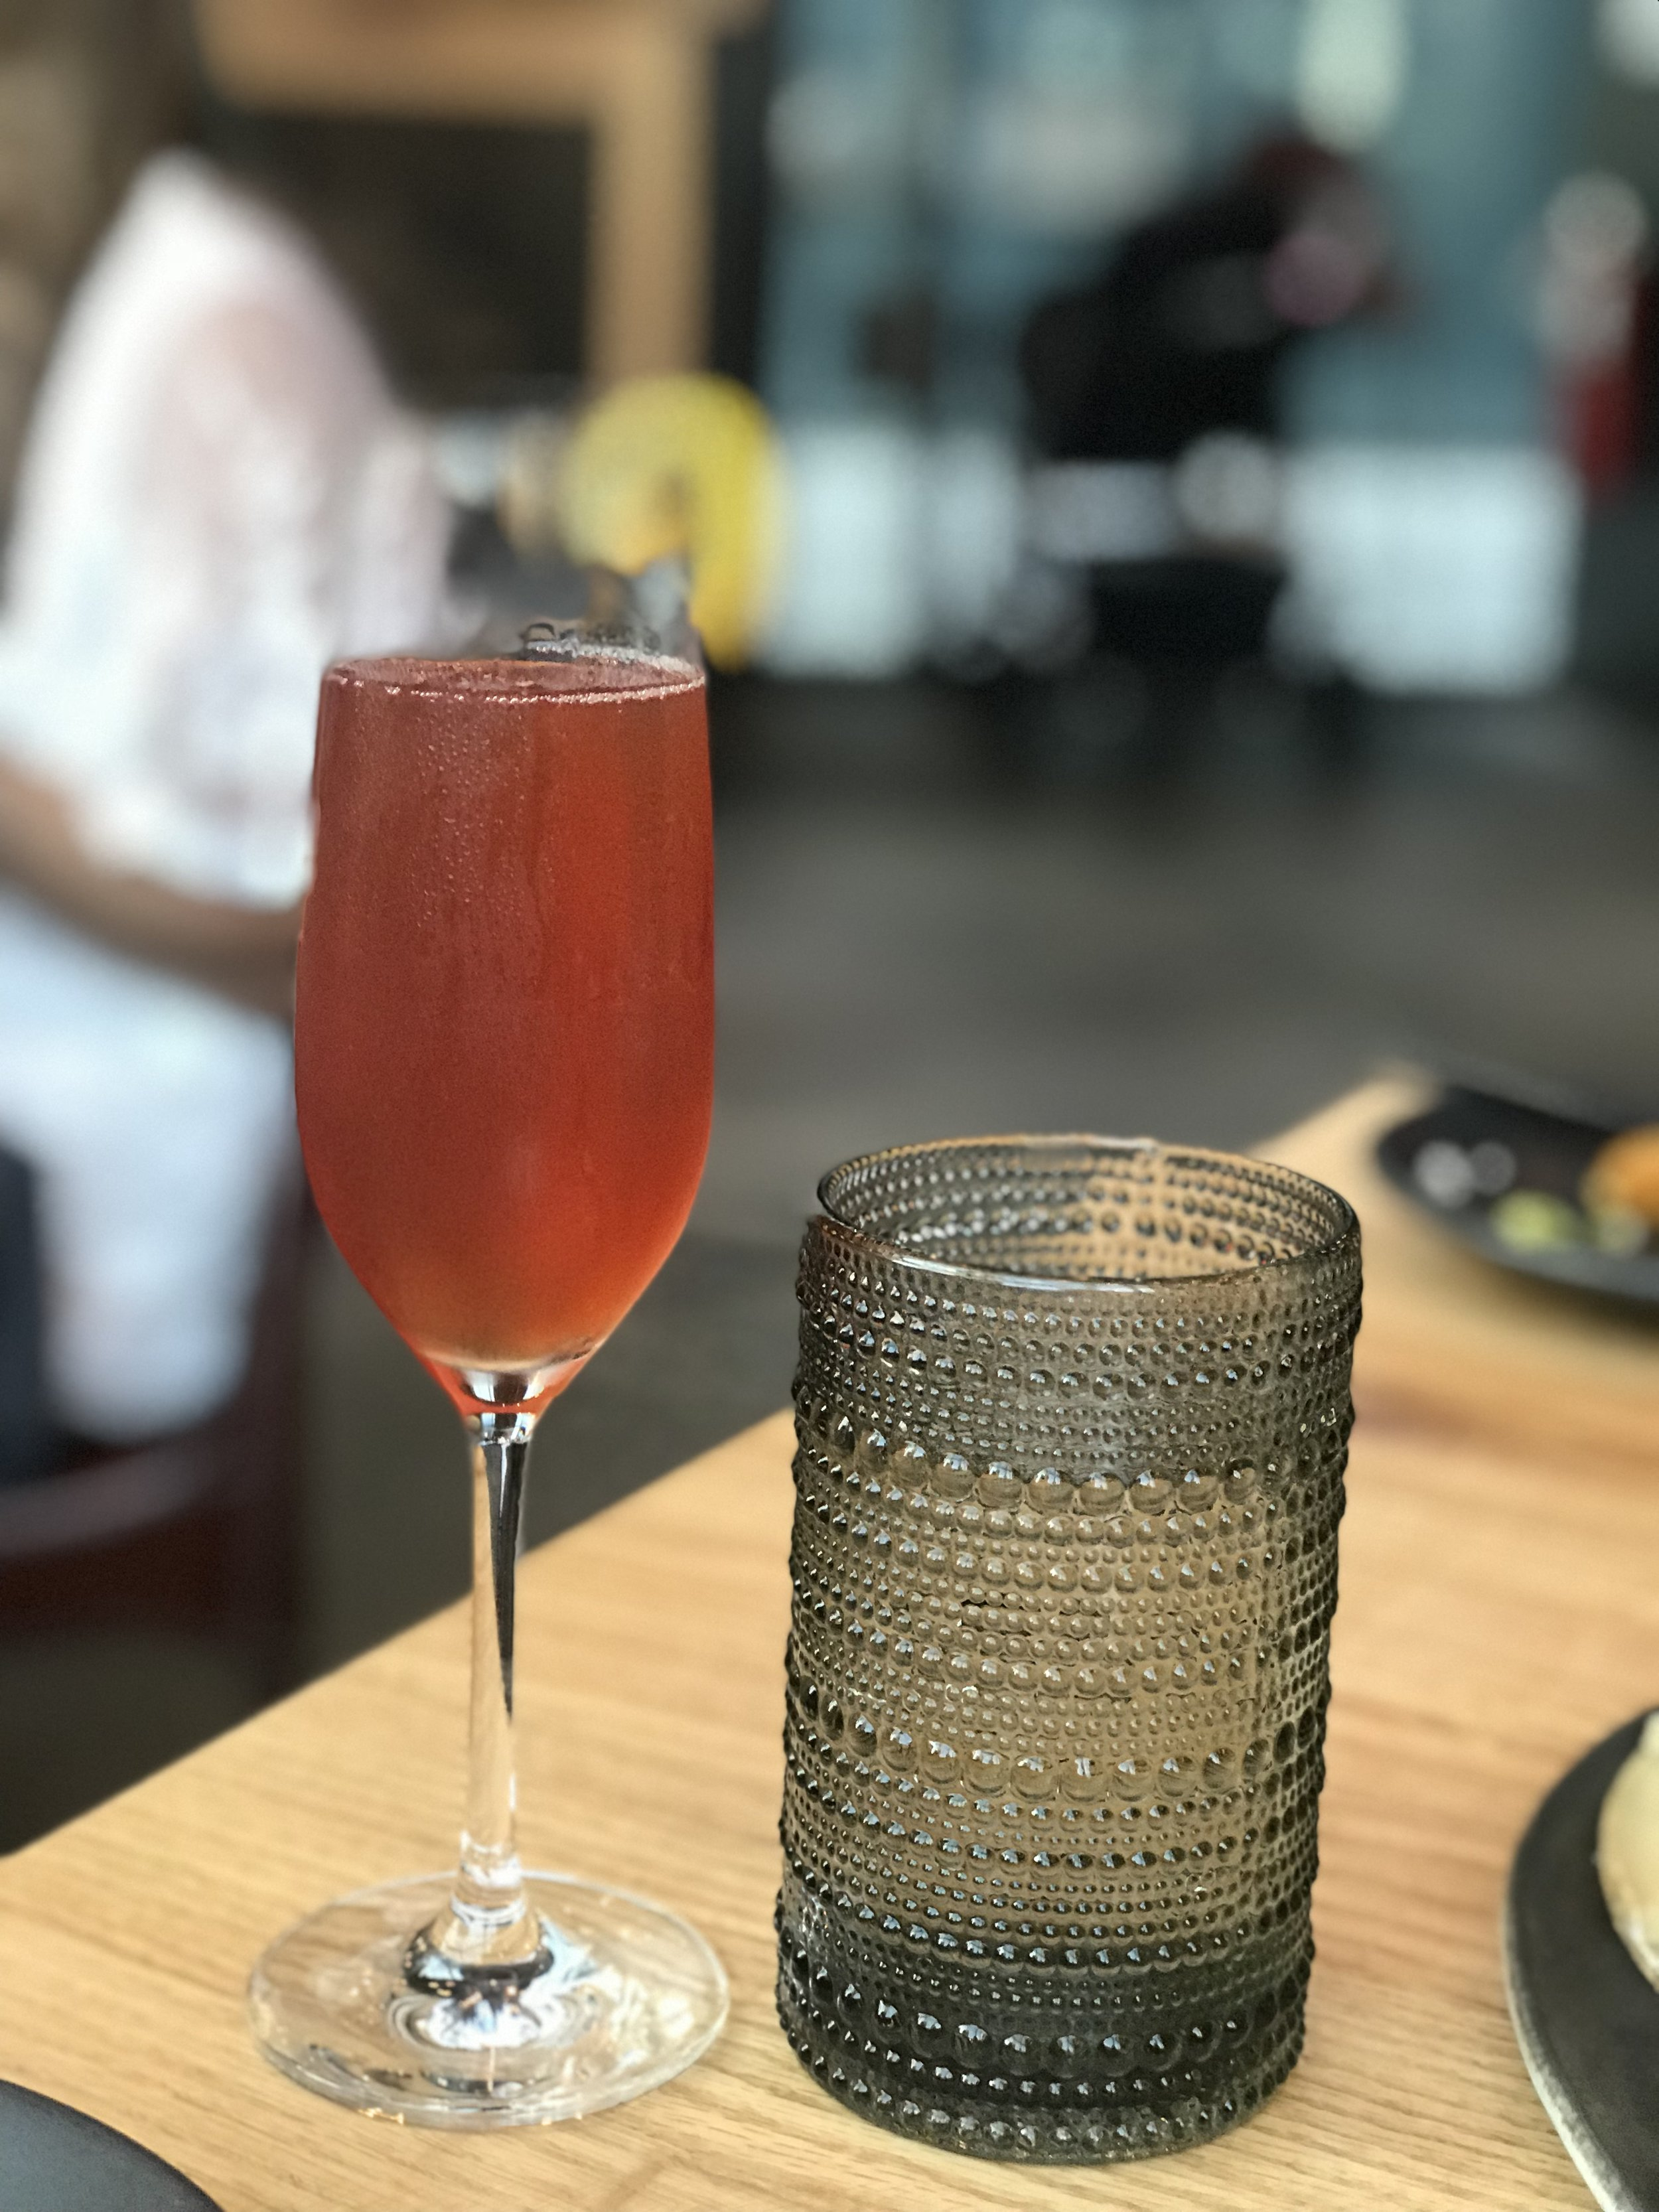 Prosecco and Rose - with a lemon twist